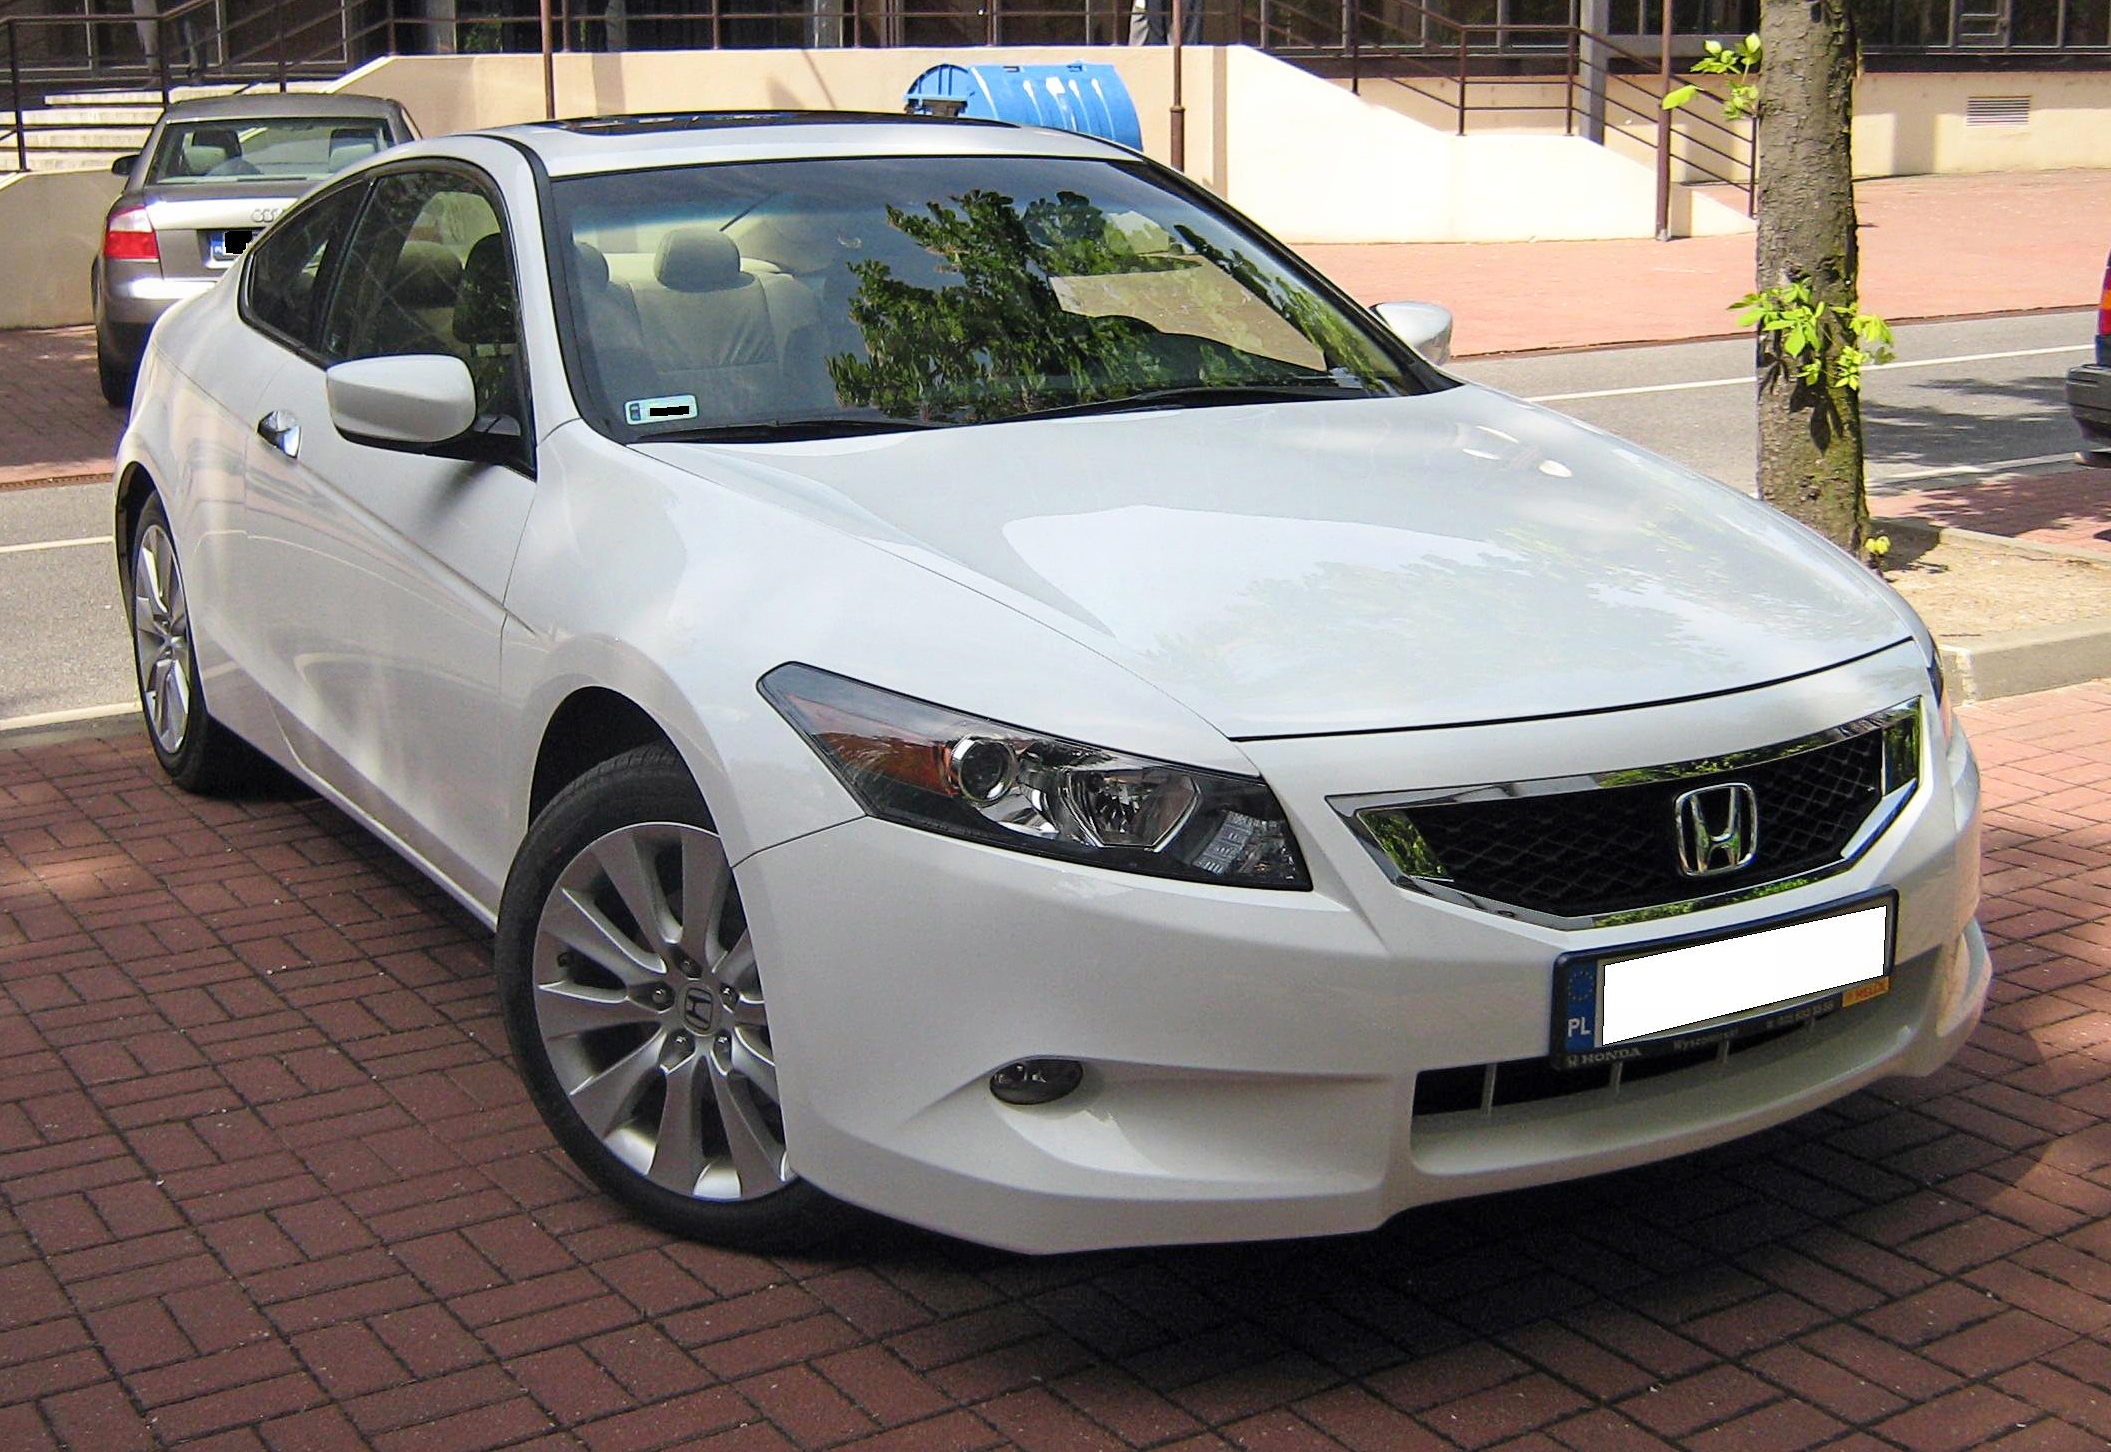 honda accord viii coupe 2009 images #1